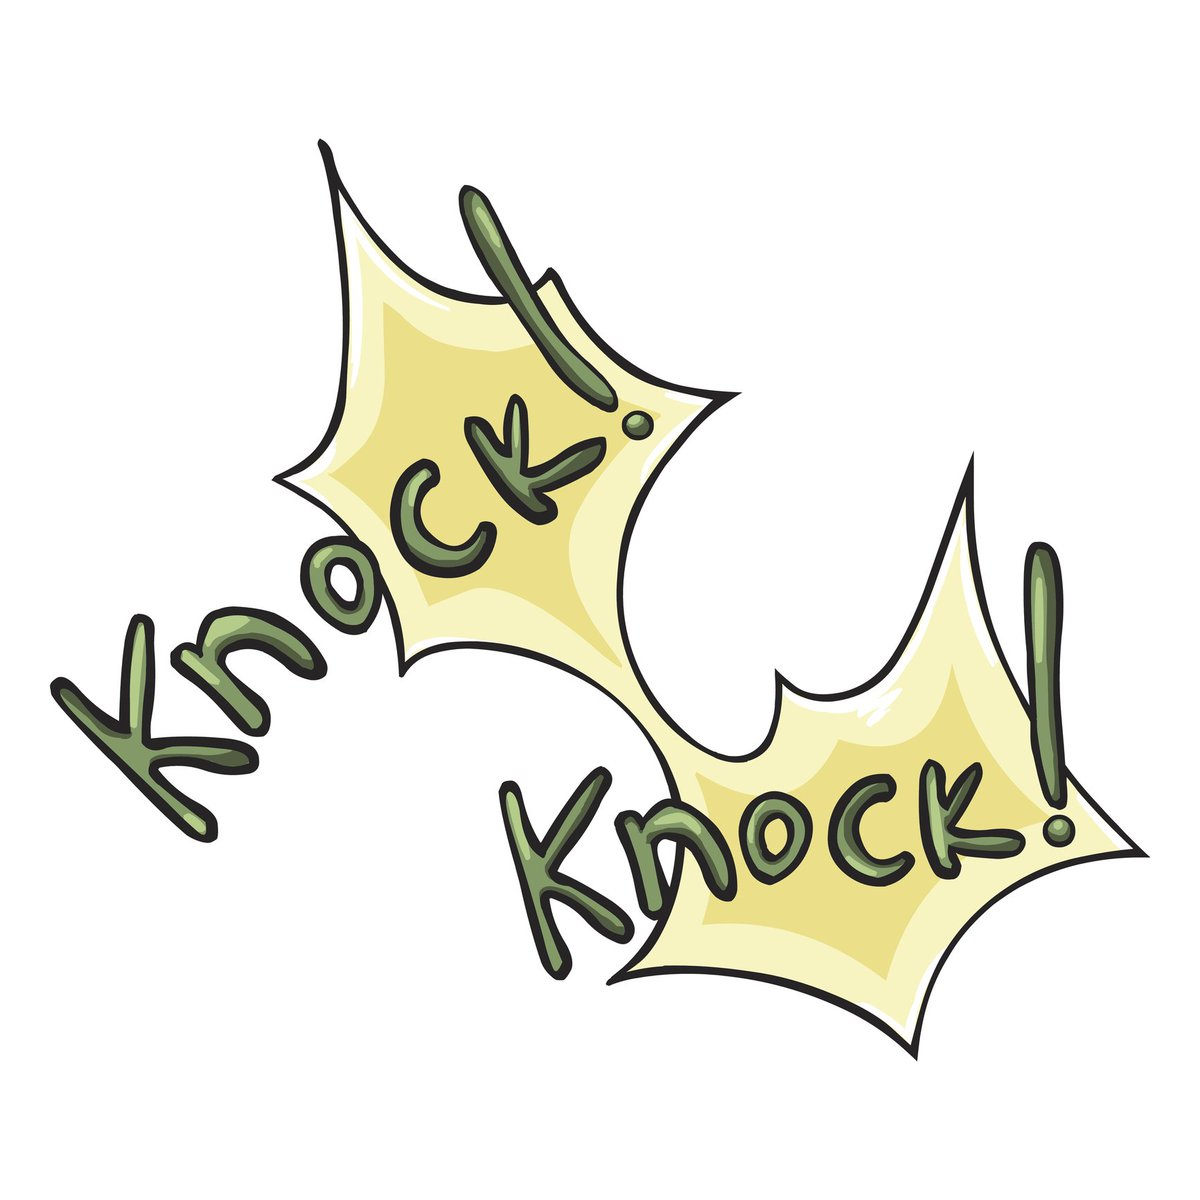 Exceptional #funnyoftheday   Knock, Knock. Whou0027s There? Avenue. Avenue Who? Avenue  Knocked On This Door Before?pic.twitter.com/g7mcQWHEQ4